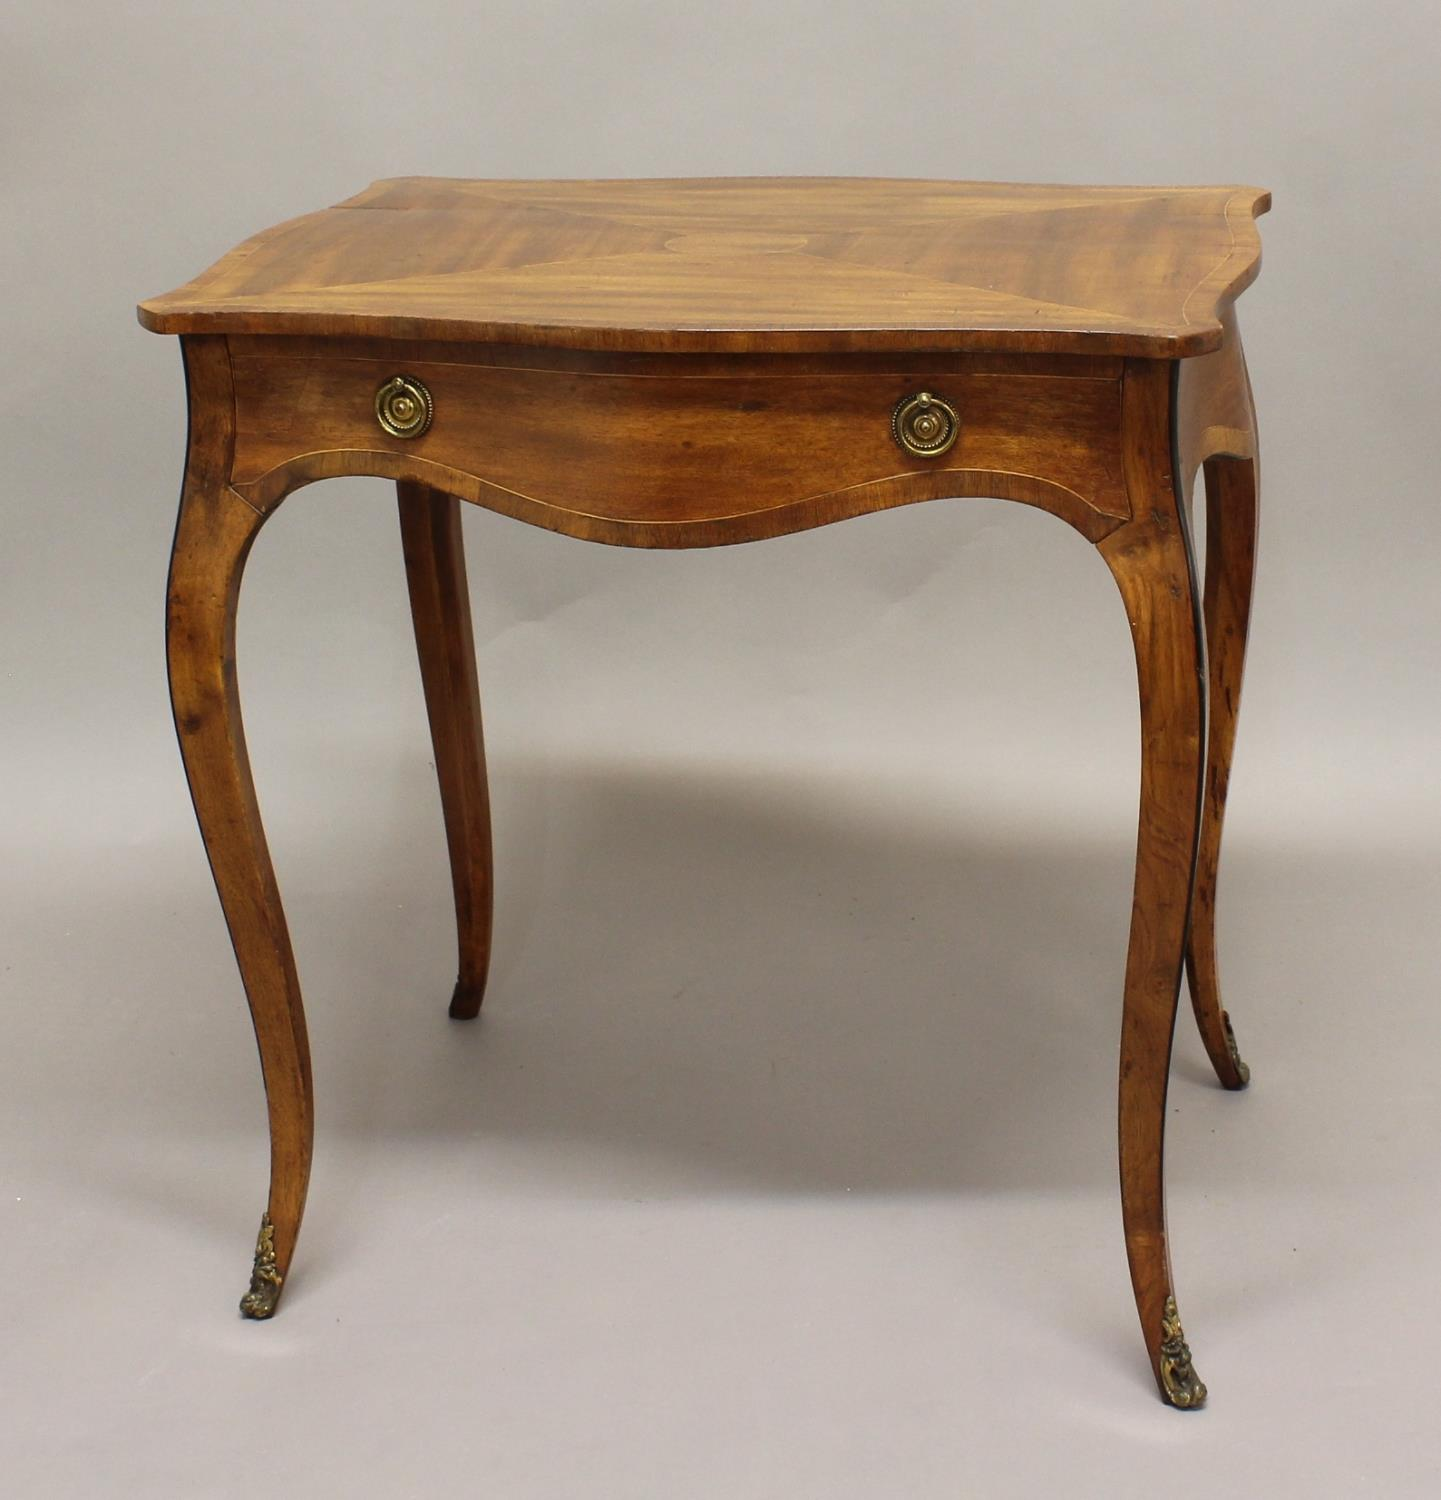 GEORGE III MAHOGANY SERPENTINE SIDE TABLE, the shaped rectangular top above a single drawer on